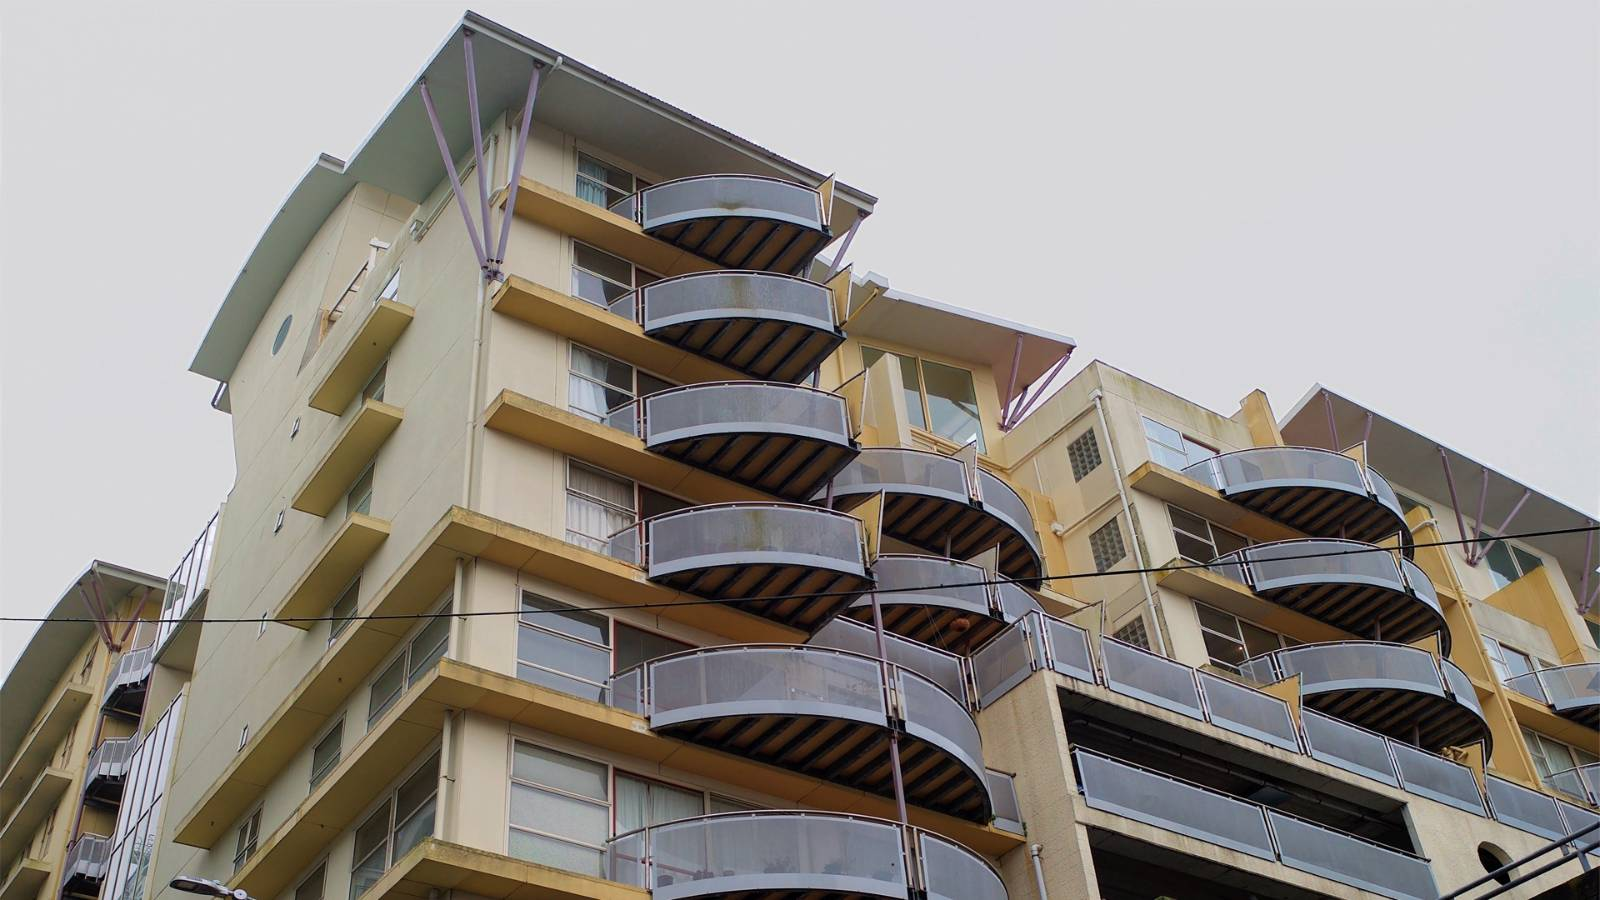 Leaky apartment disasters won't go away